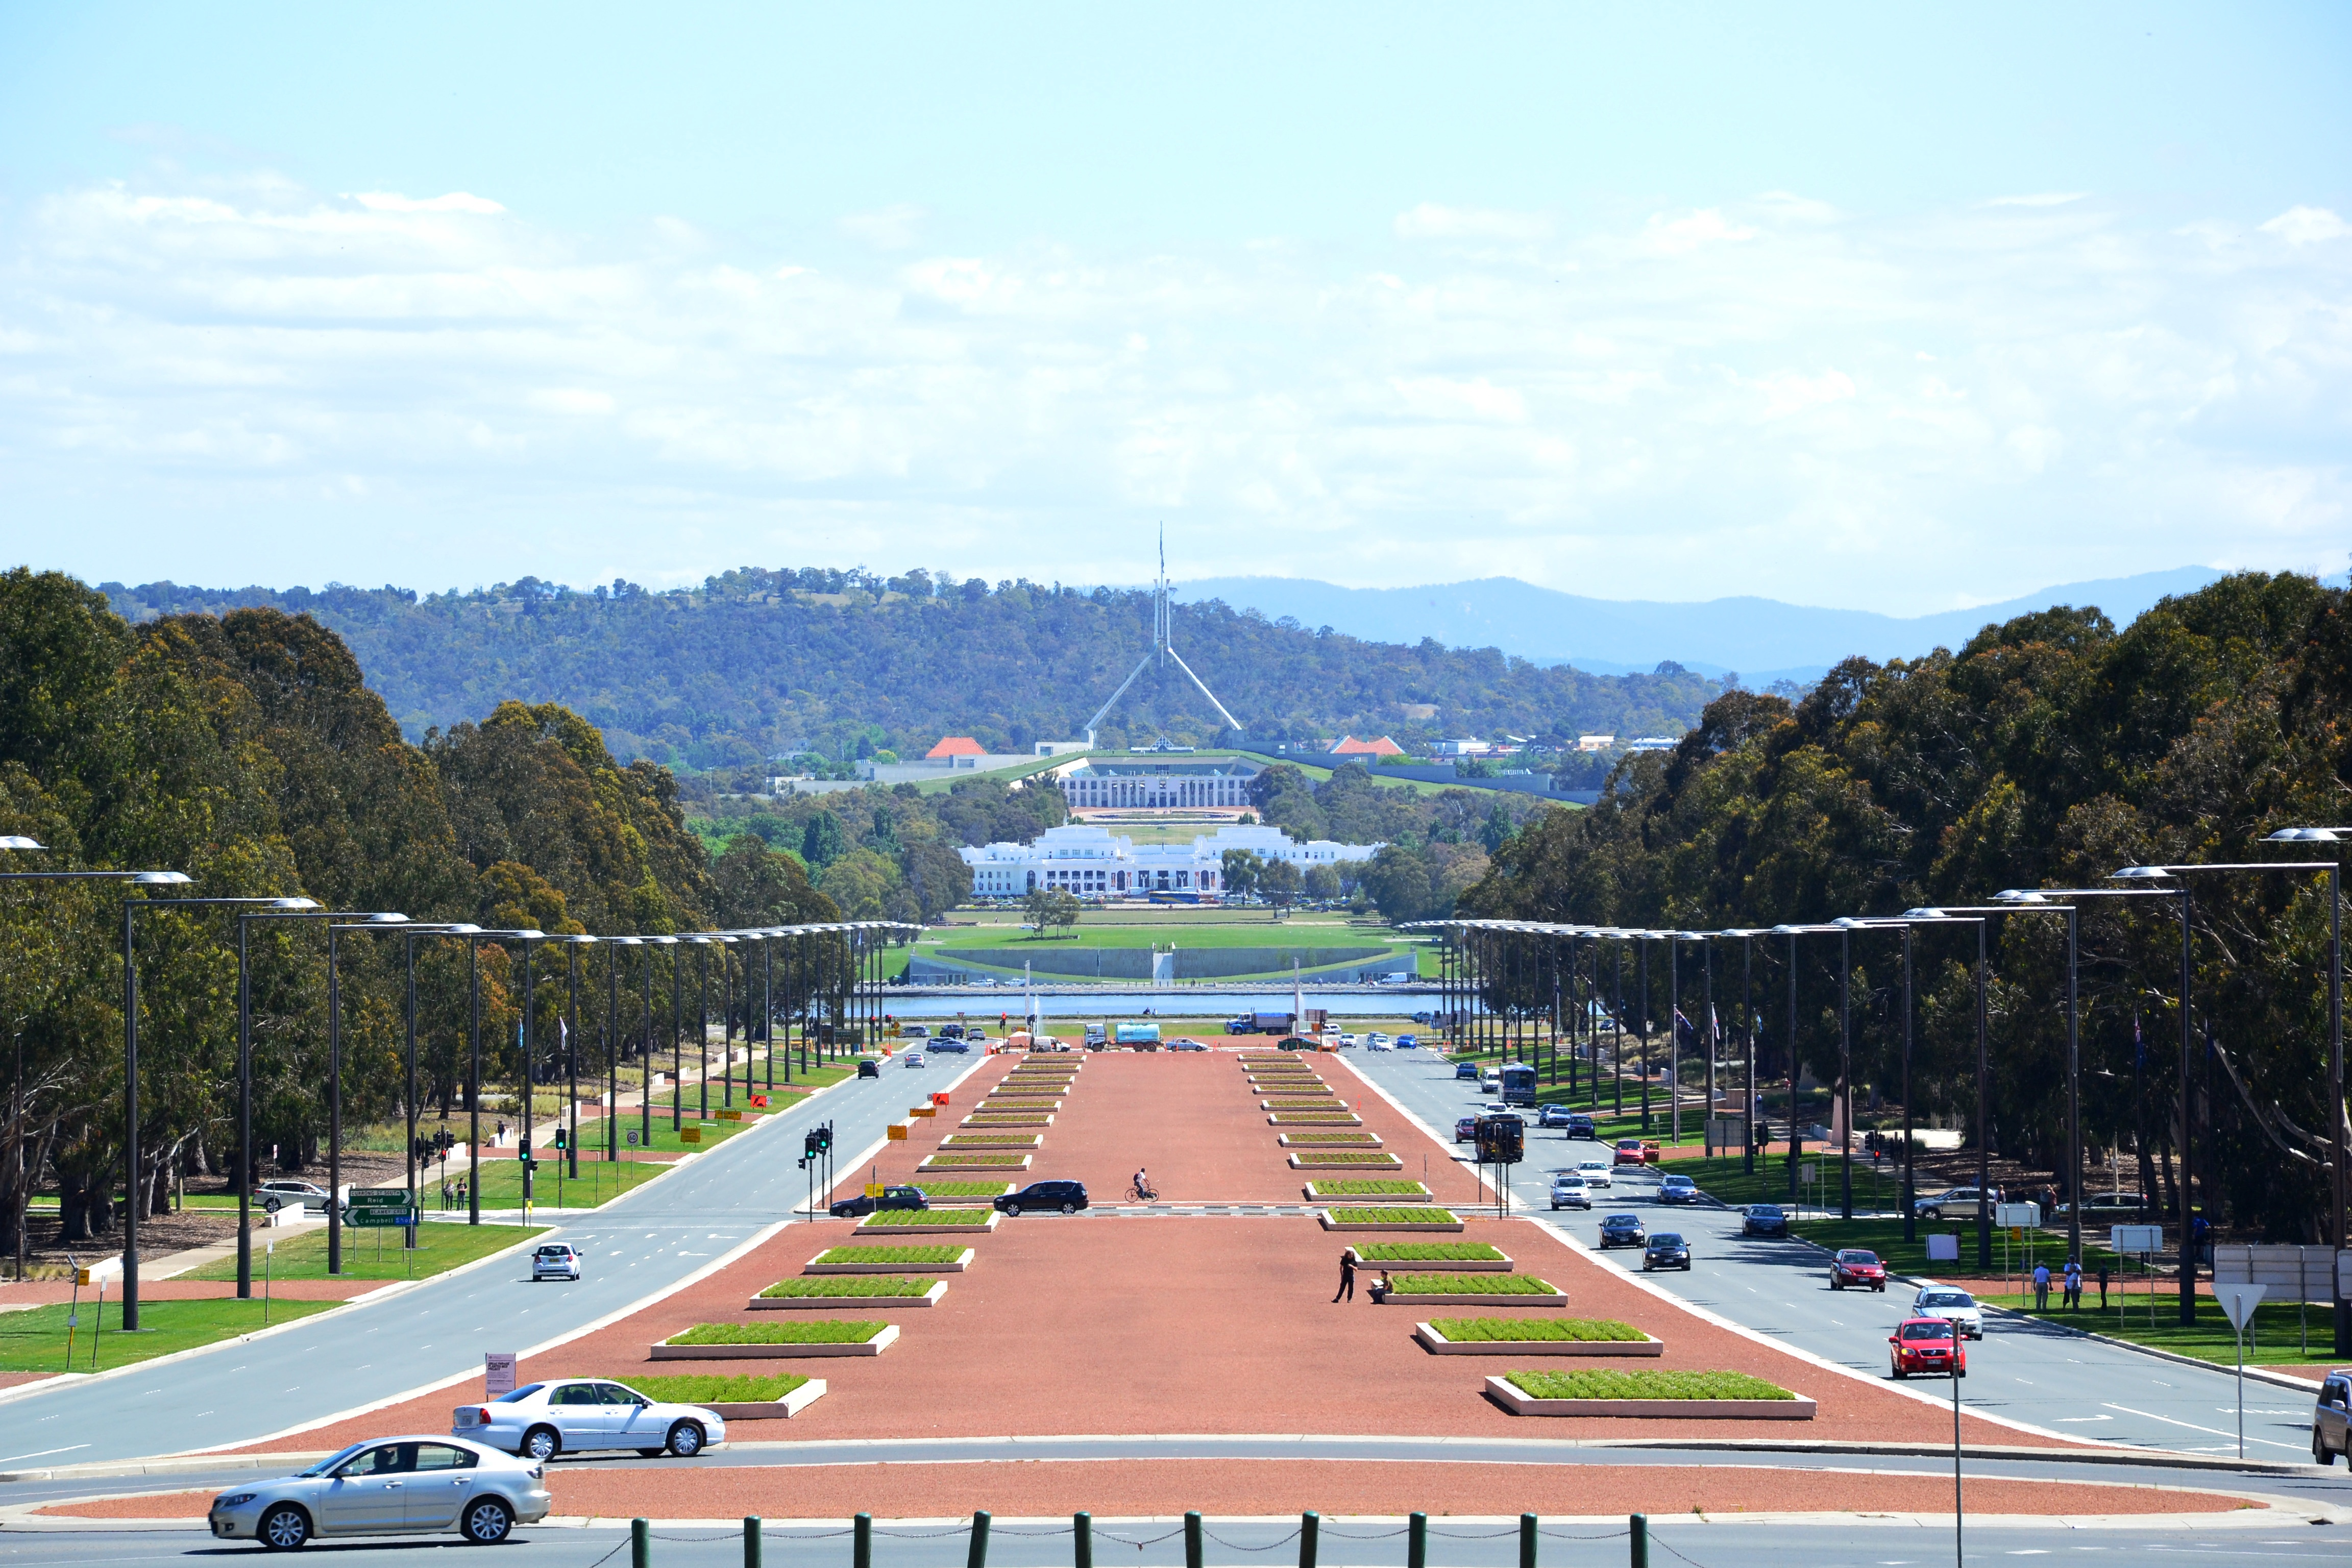 Enter the Australian Capital Territory and the nation's capital - Canberra